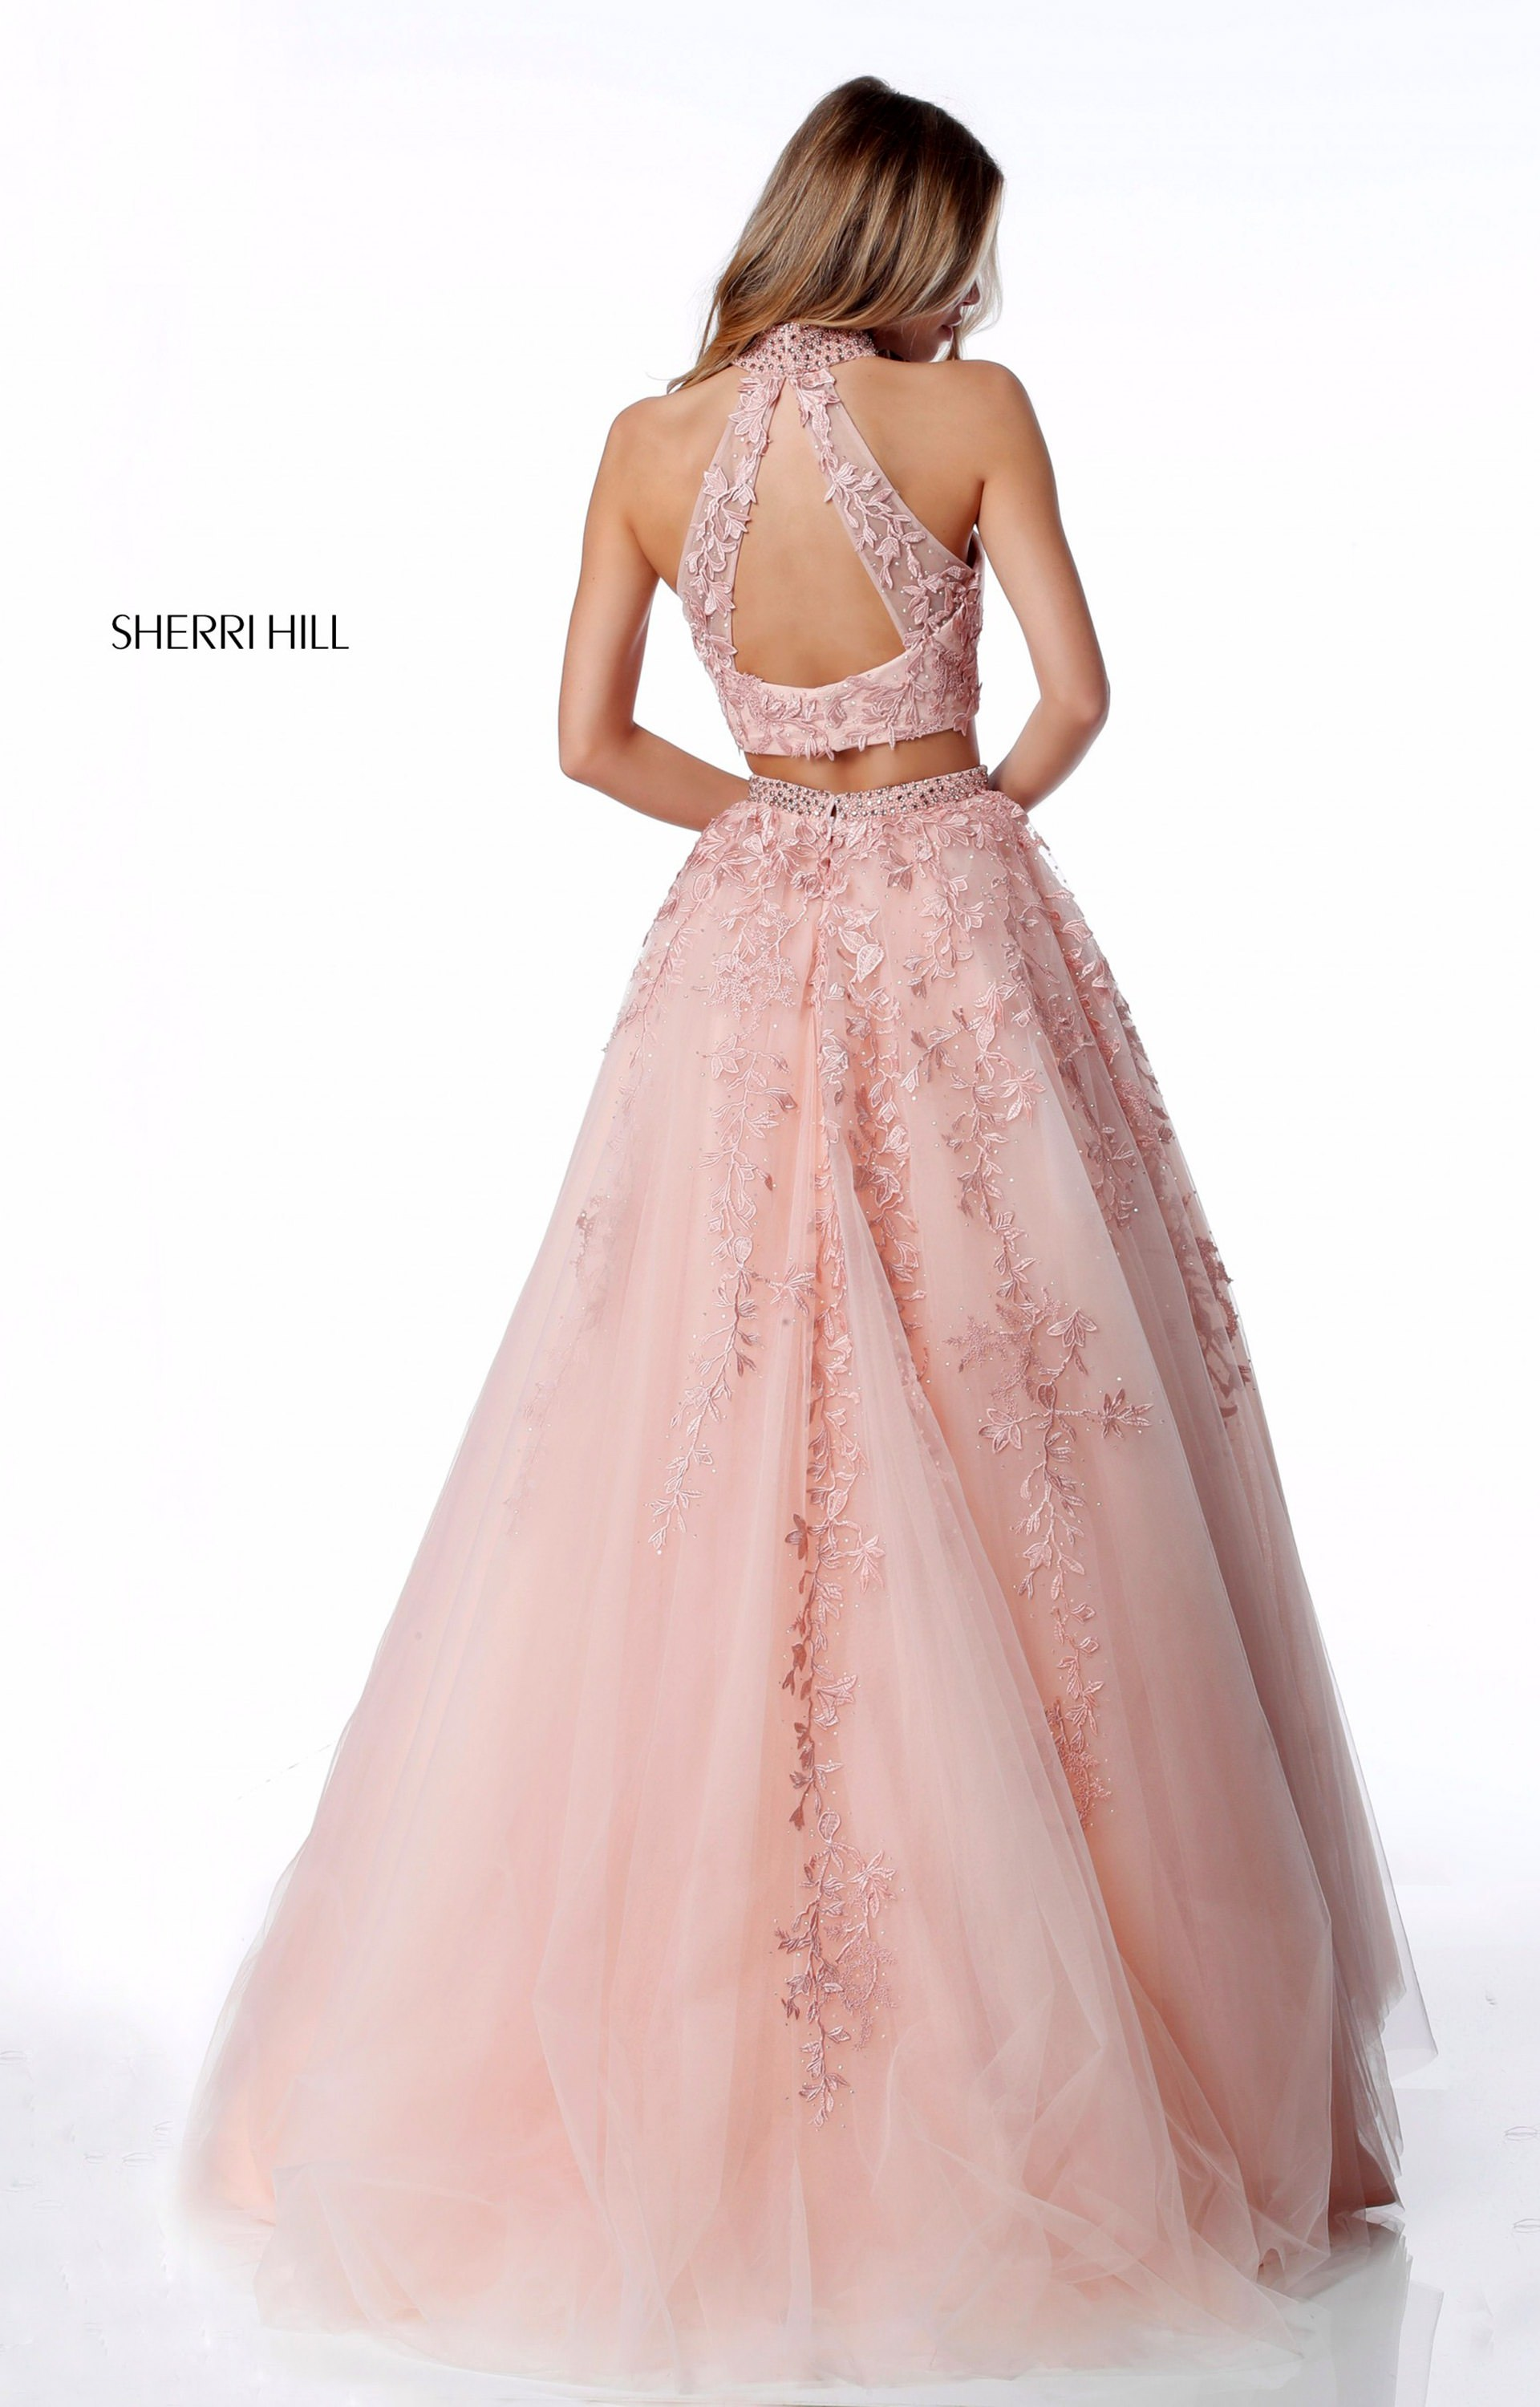 Sherri Hill 51925 2 Piece Tulle Ball Gown Prom Dress